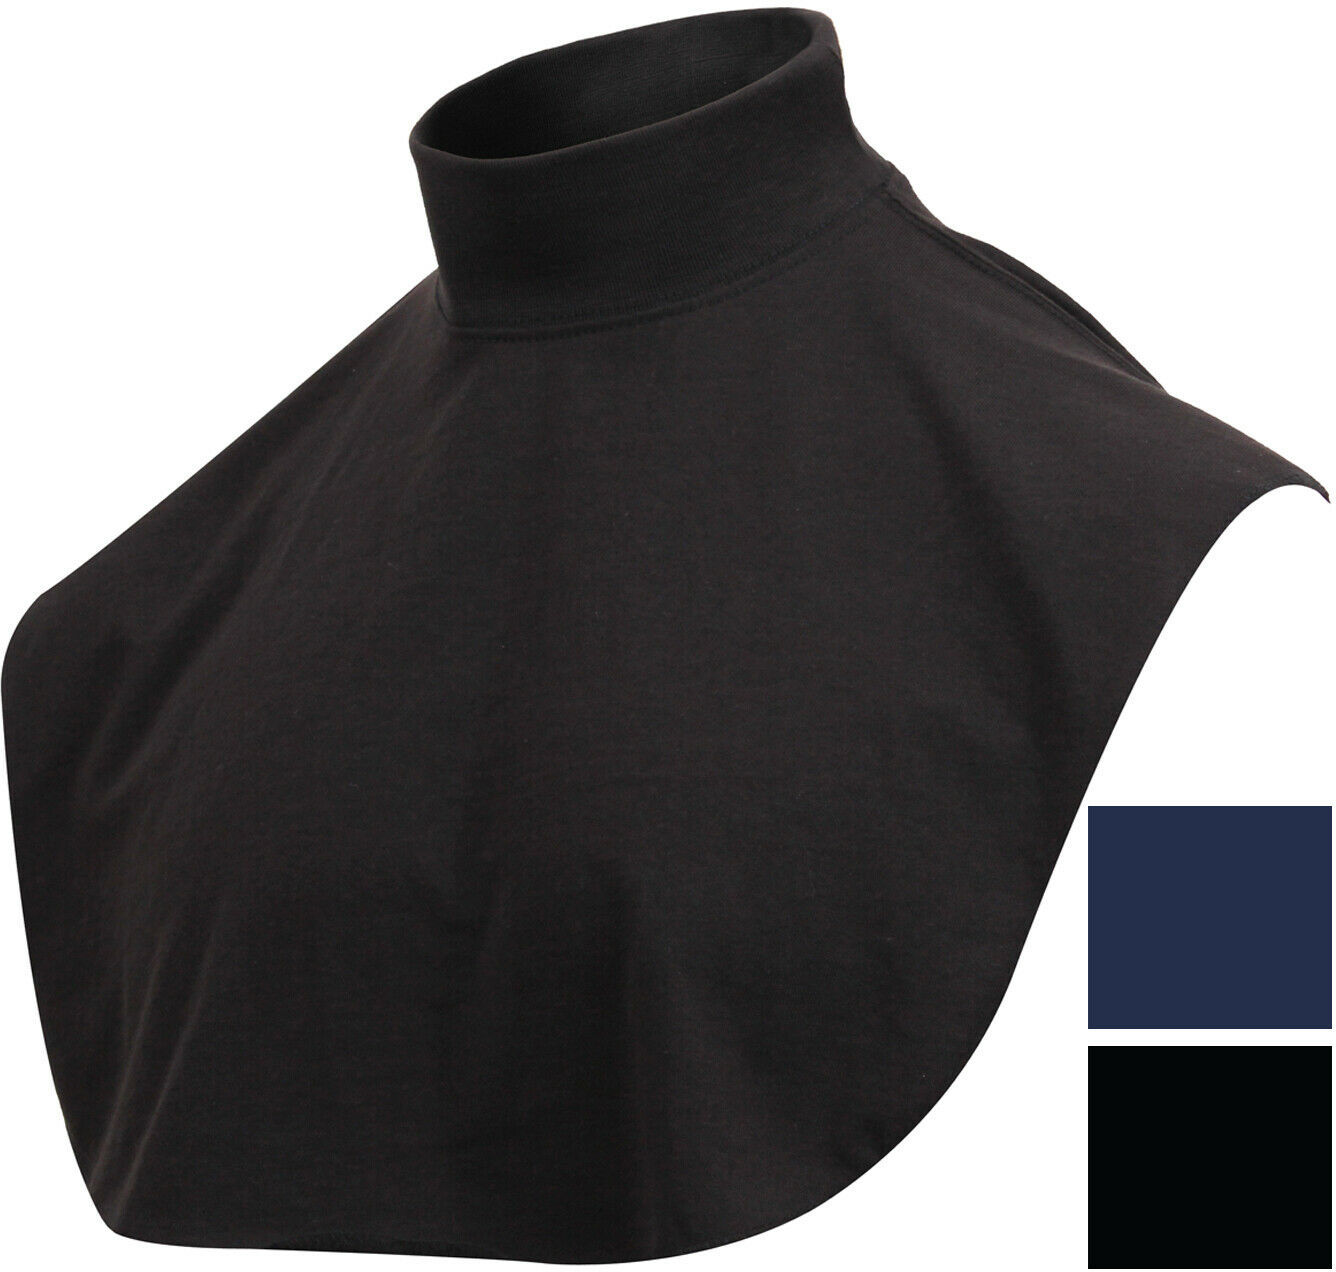 Primary image for Mock Turtleneck Dickie High Collar Warm Neck Protection Police Duty Uniform Top